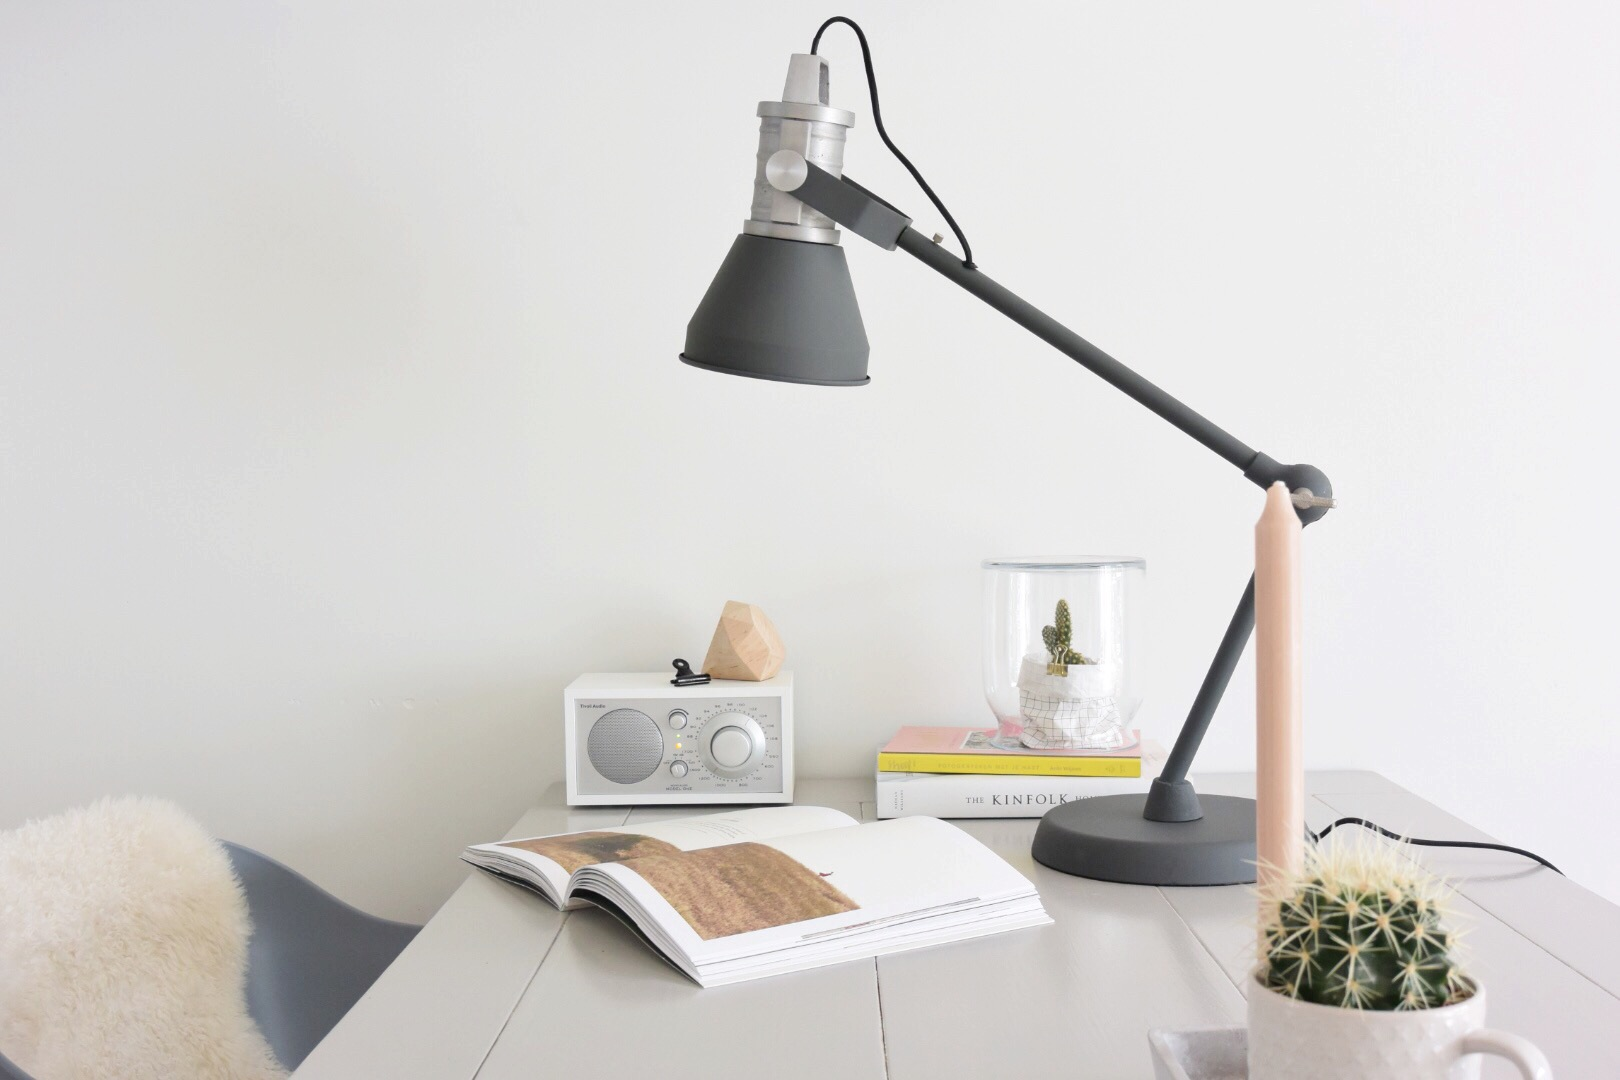 selinesteba.com - Anne lighting winnen.JPG